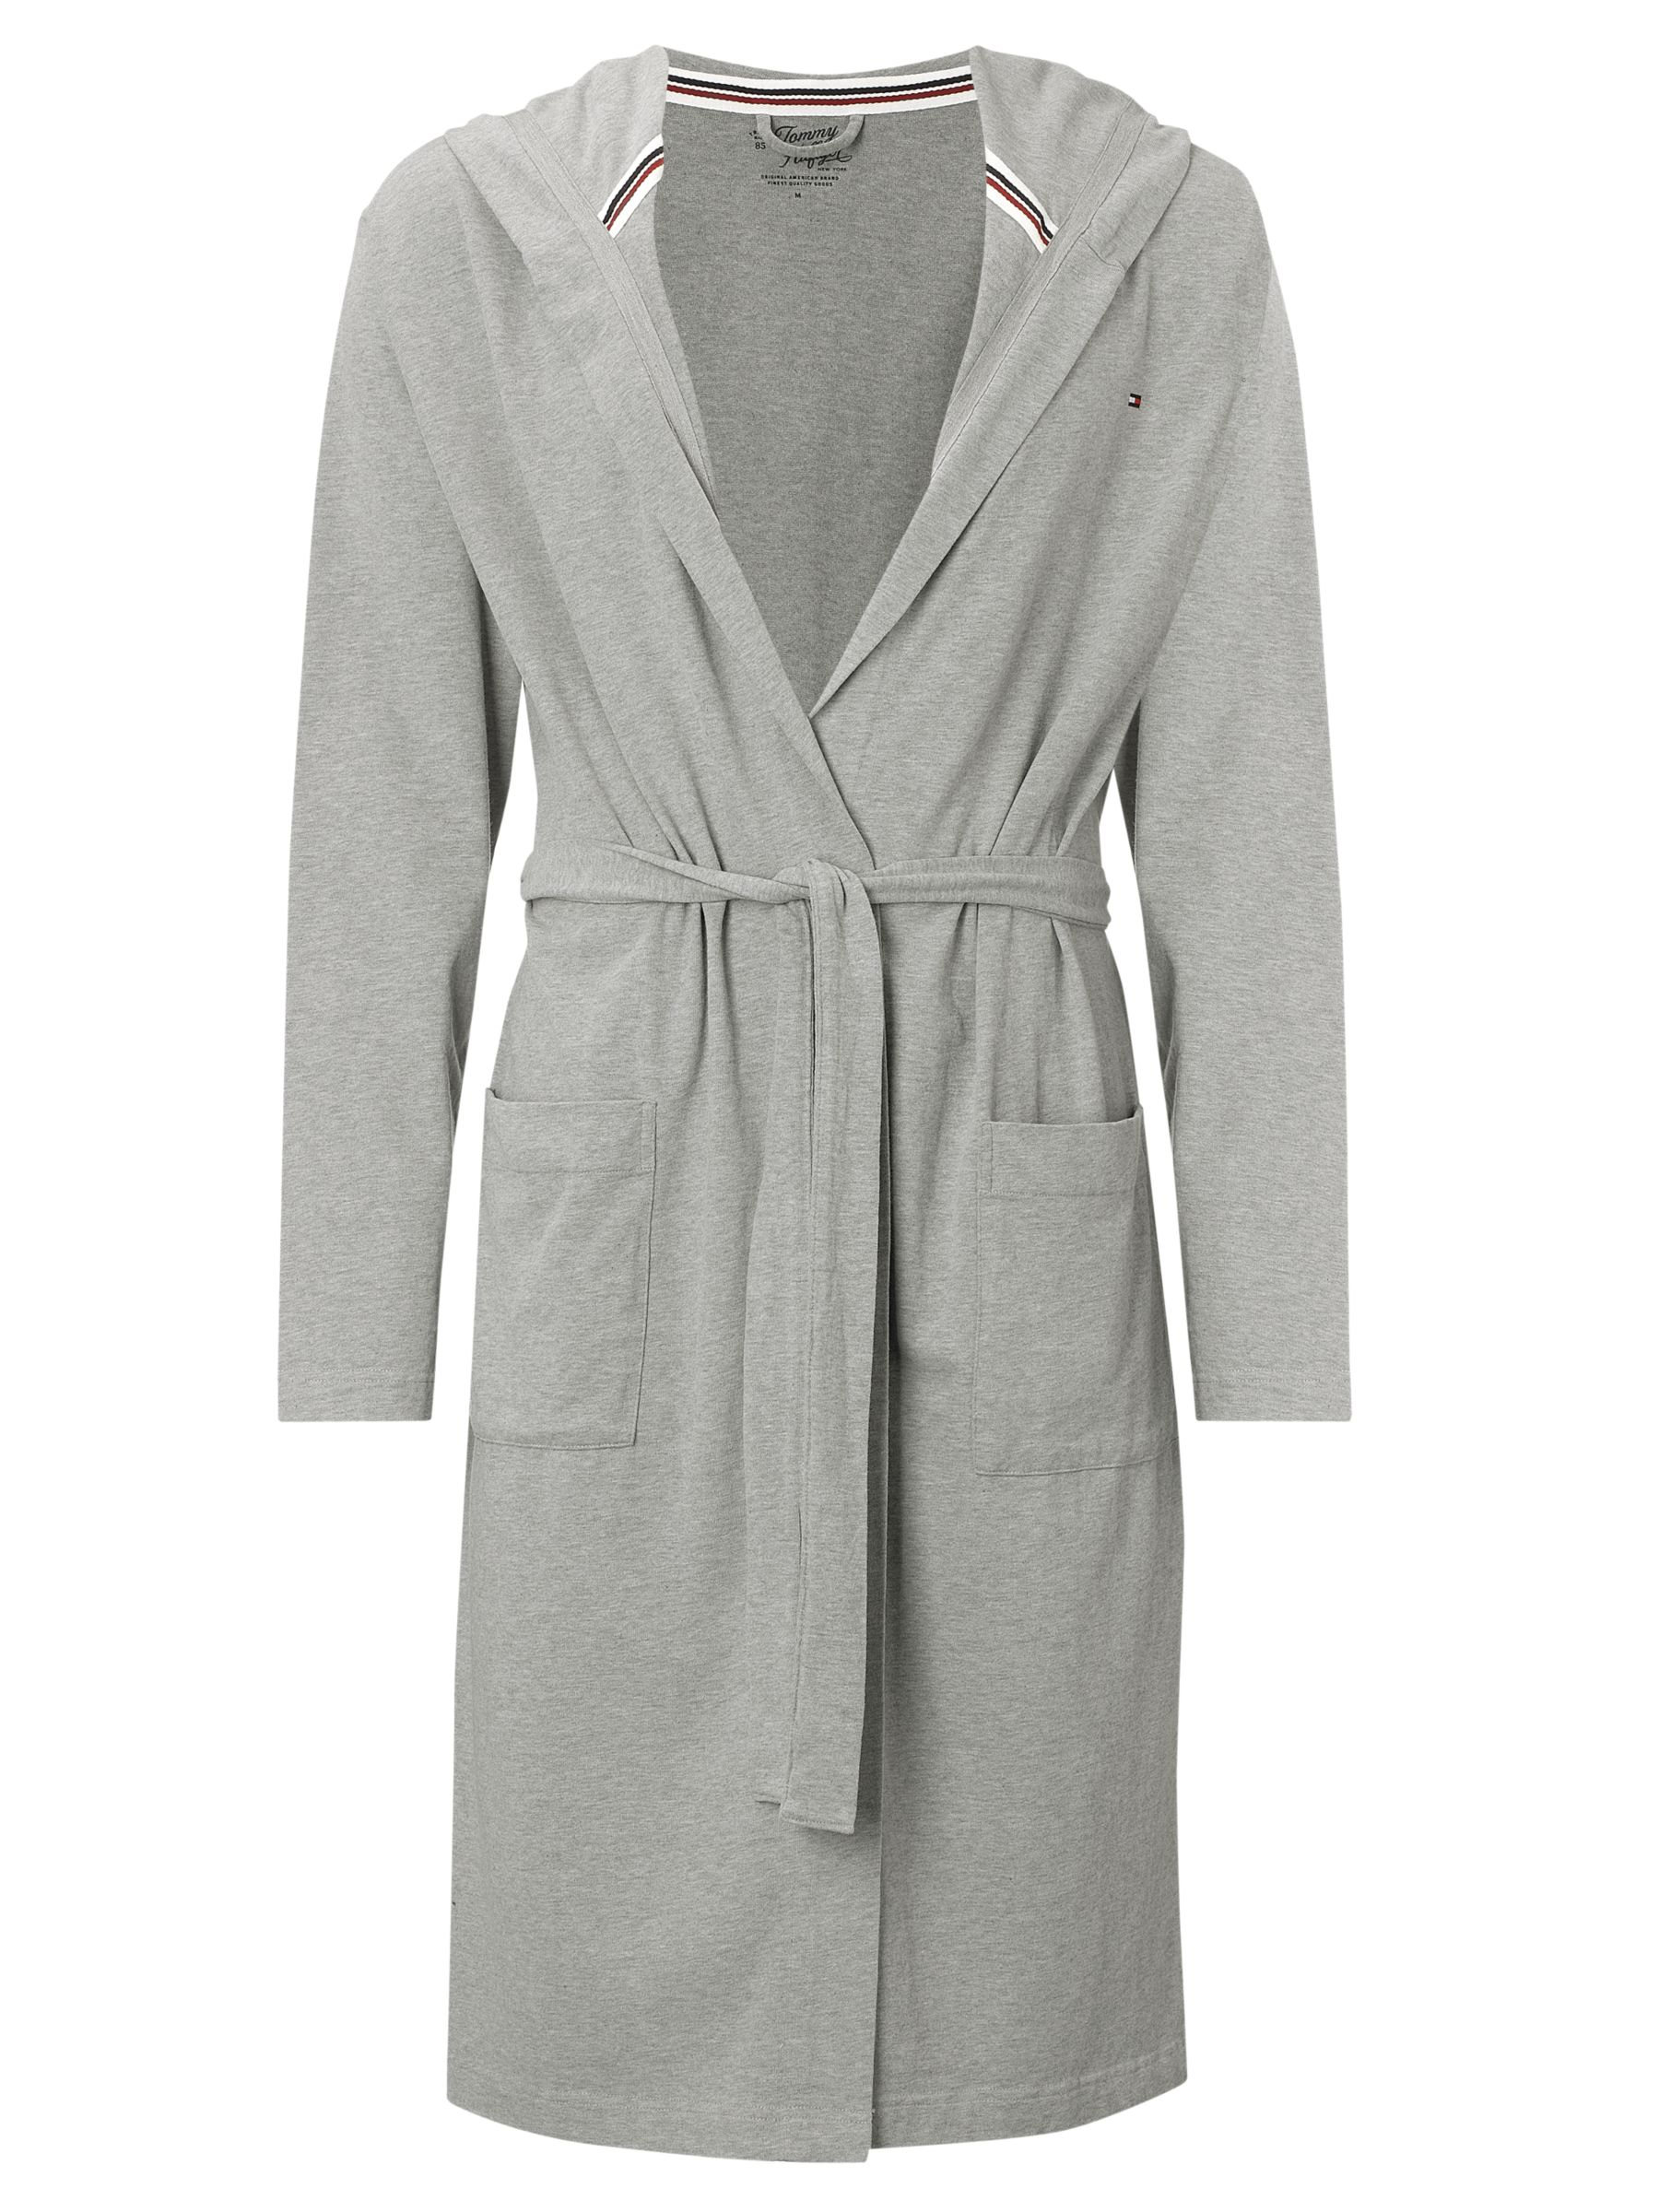 Tommy Hilfiger Stillman Bath Robe, Grey